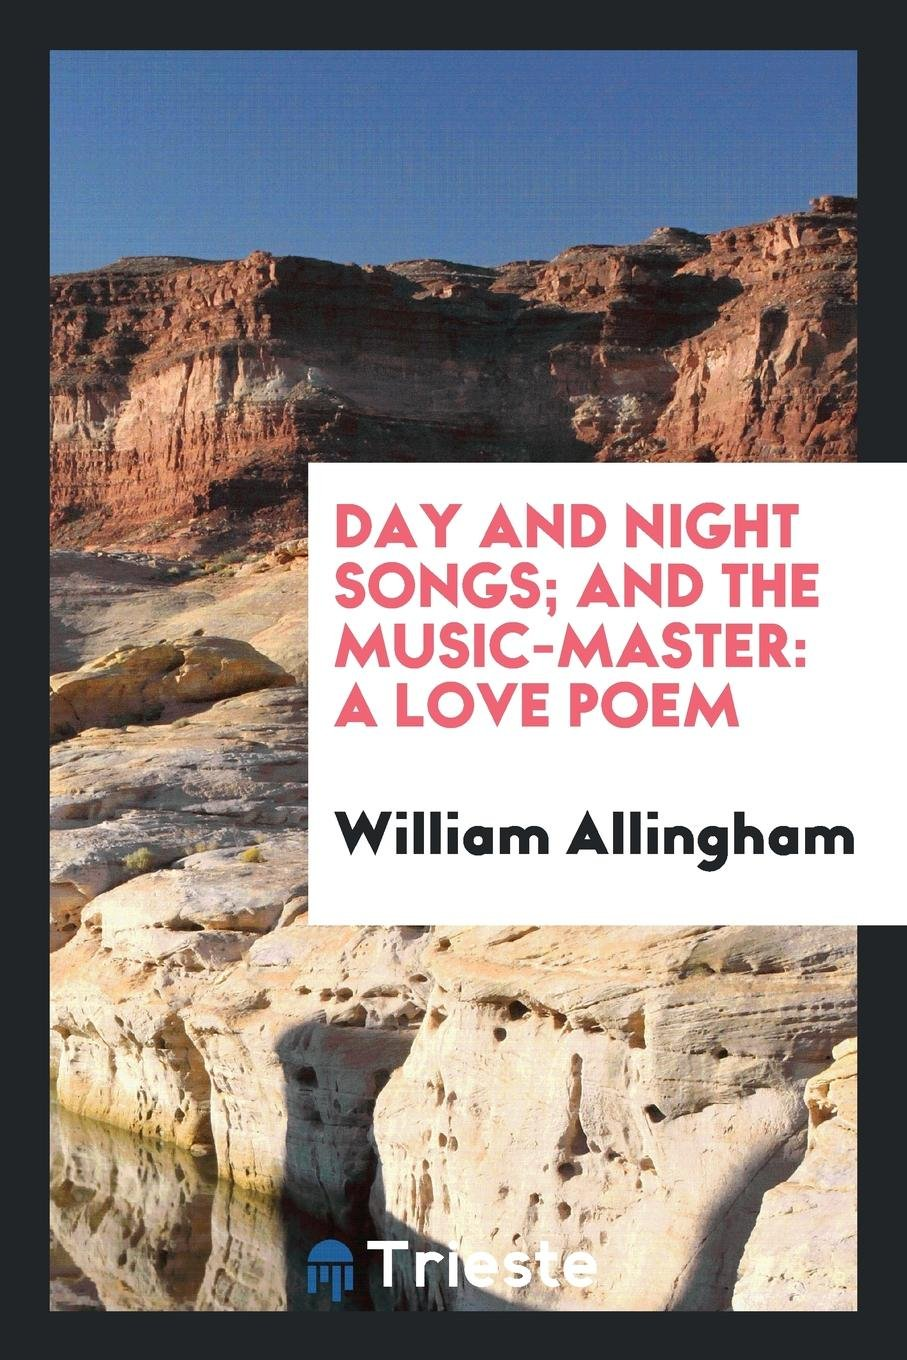 Day and night songs; and The music-master: a love poem pdf